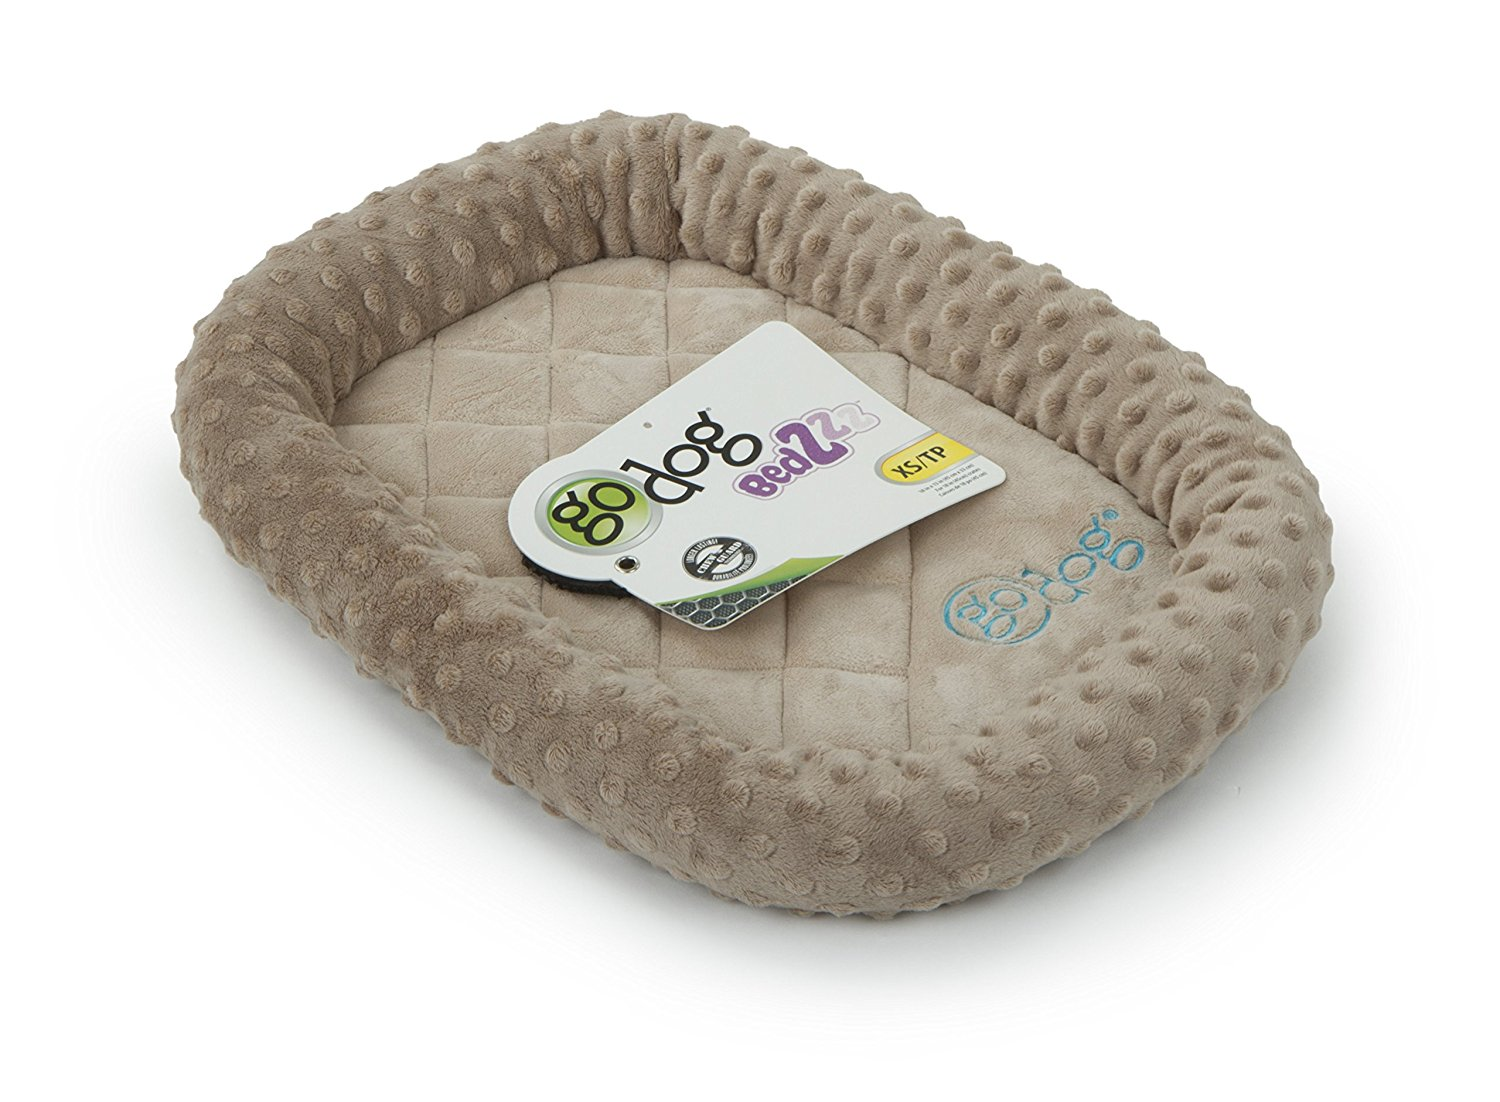 GoDog BedZzz With Chew Guard Technology